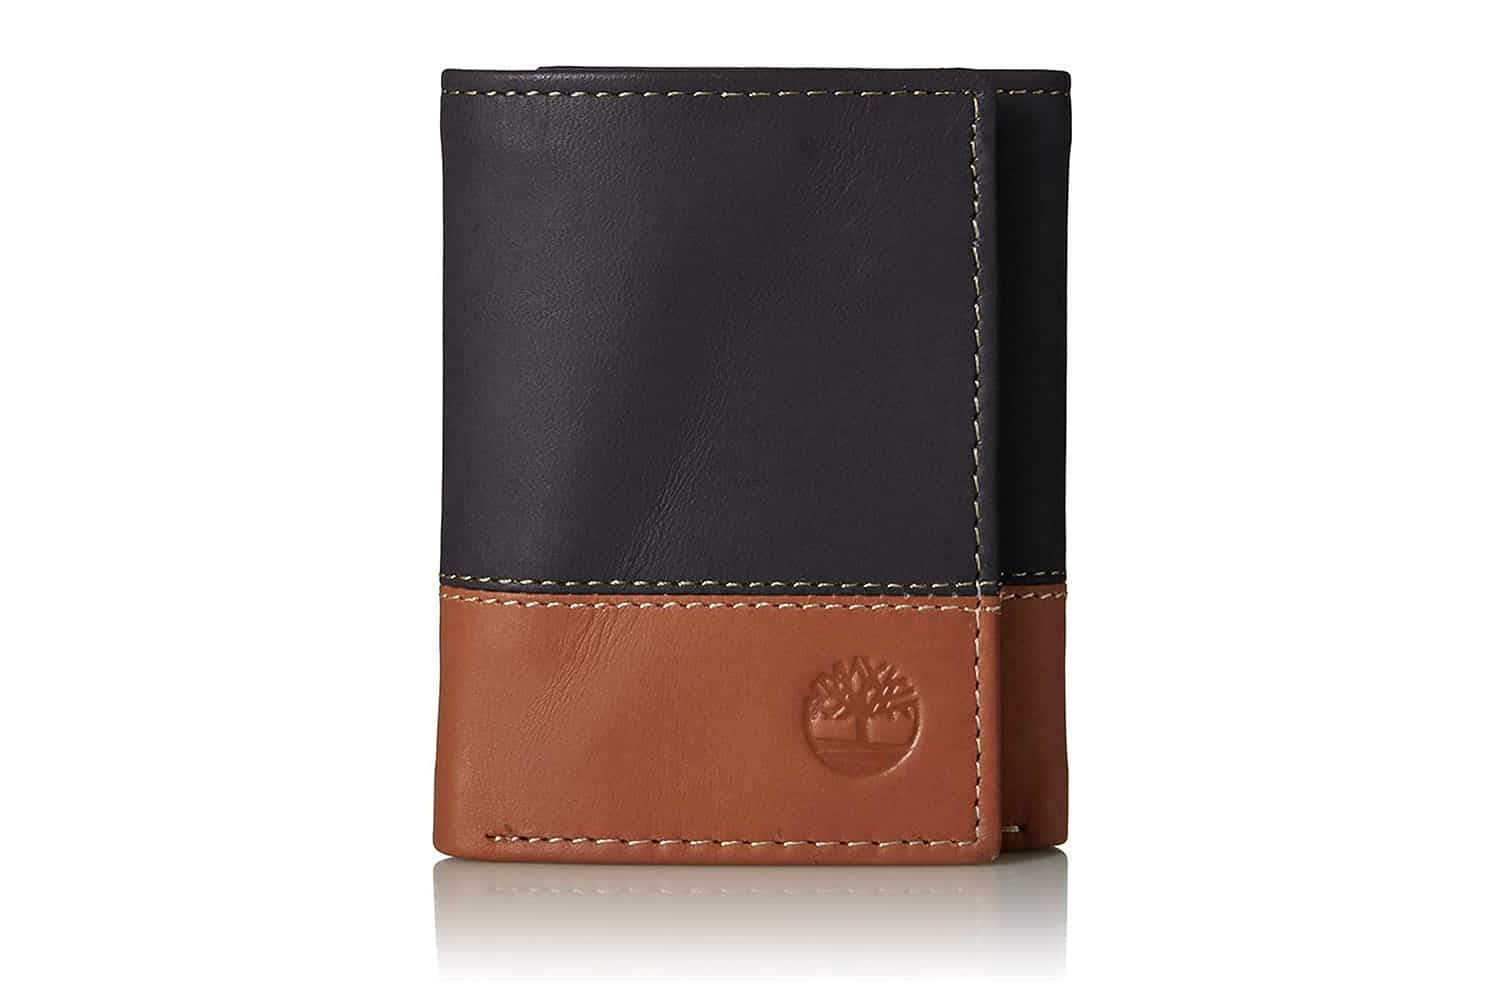 Timberland-Men's-Leather-Trifold-Wallet-with-ID-Window